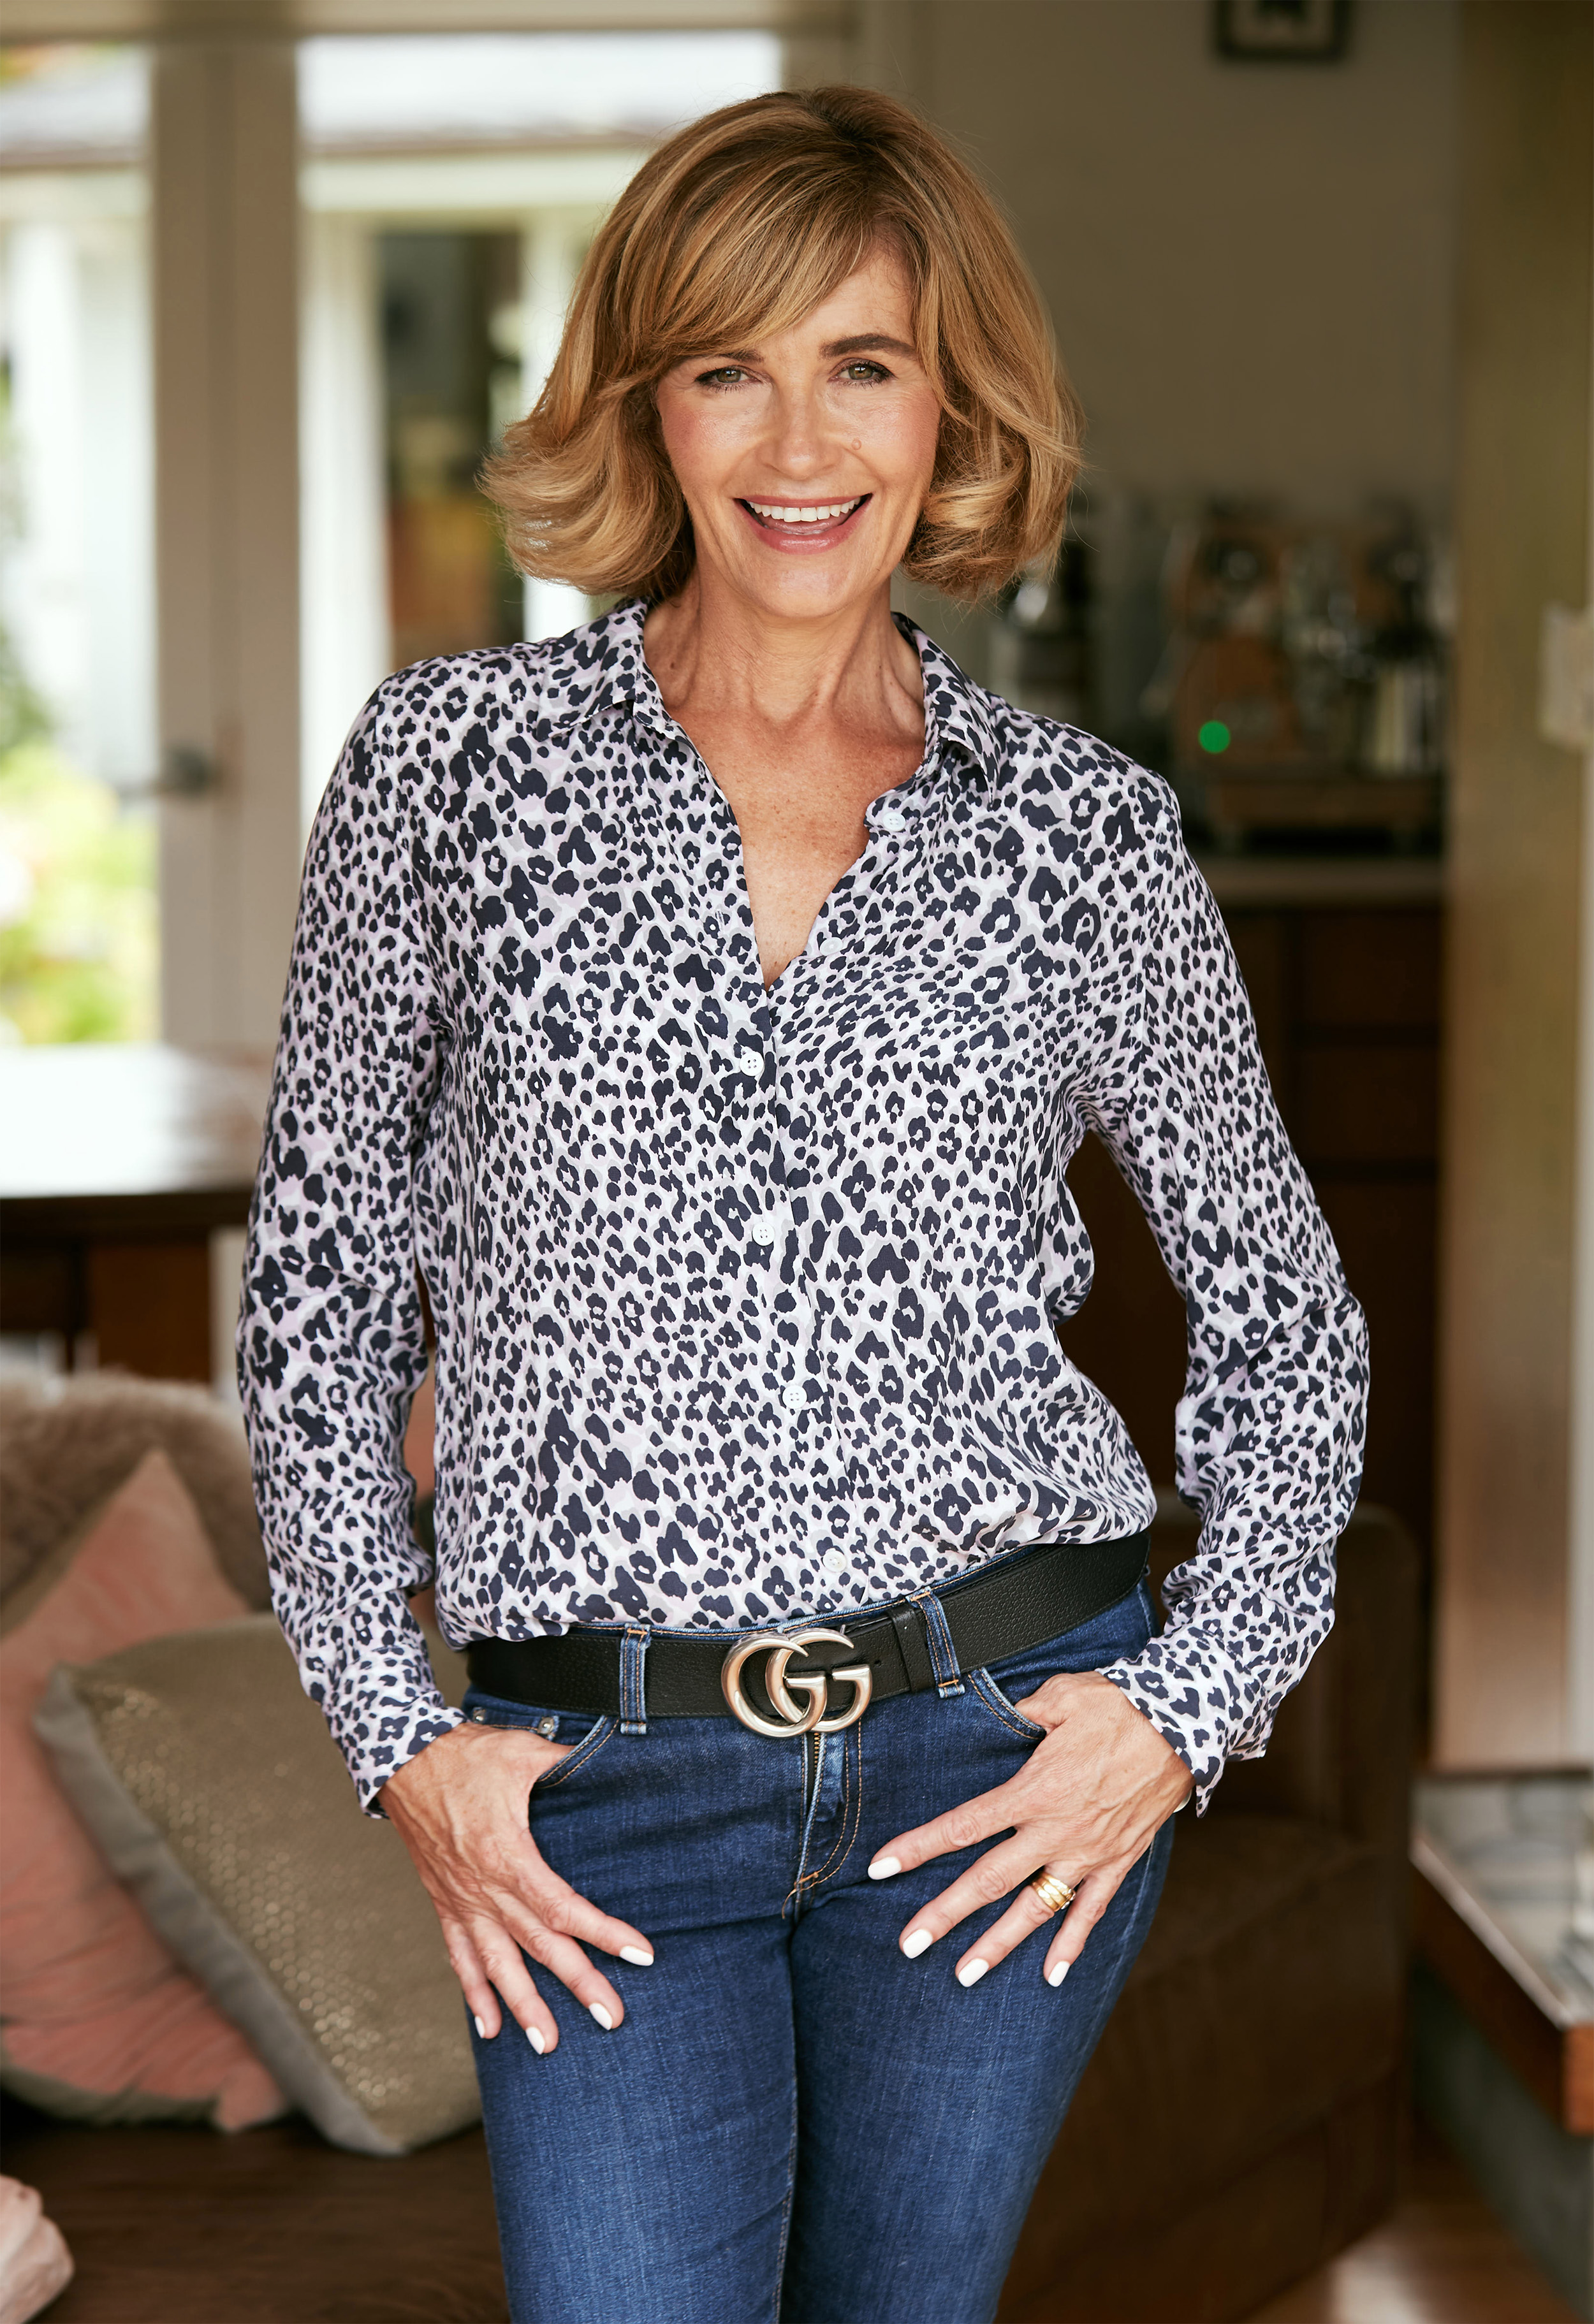 Blonde lady wearing leopard print shirt and gucci belt with hands in pockets